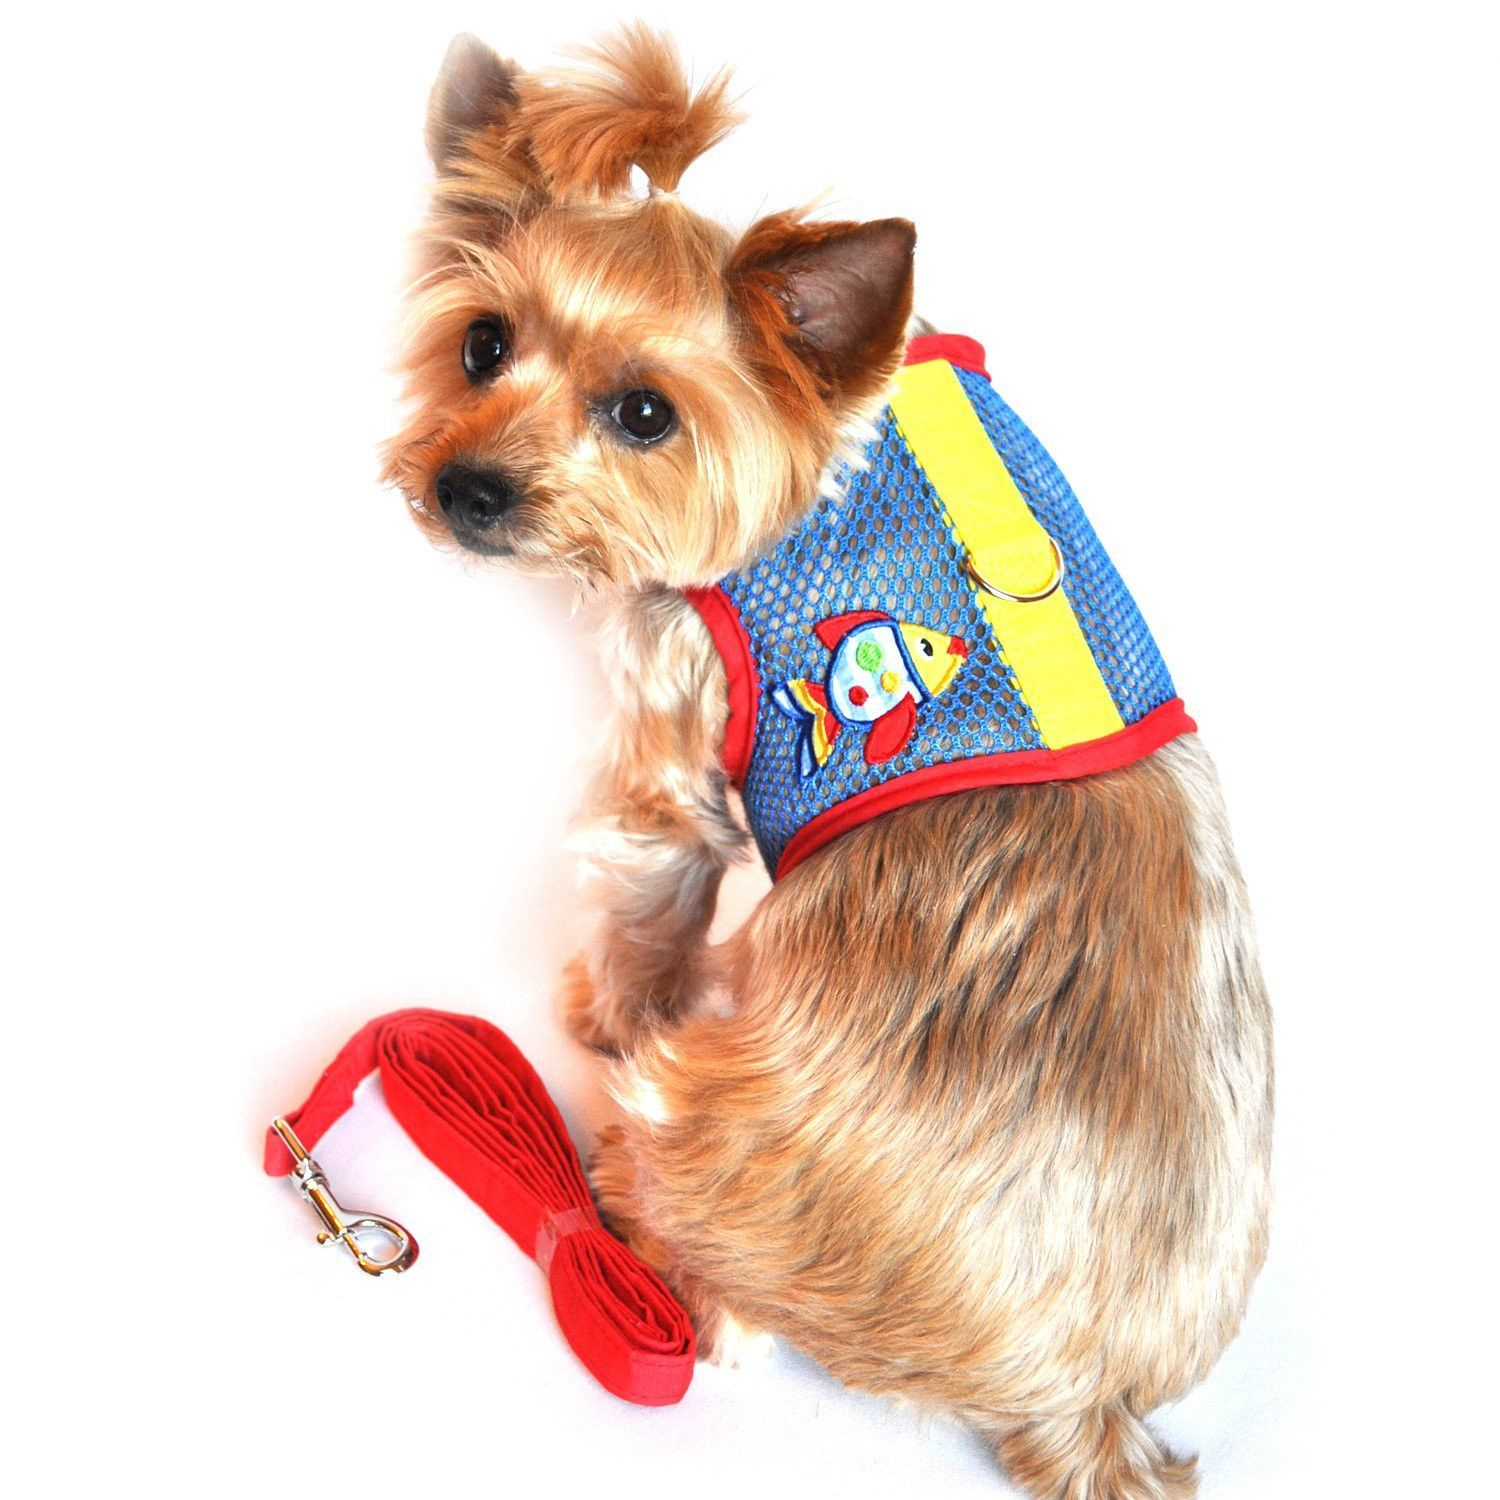 The Cool Mesh Small Dog Harness Is Perfect For Summer Keep Your